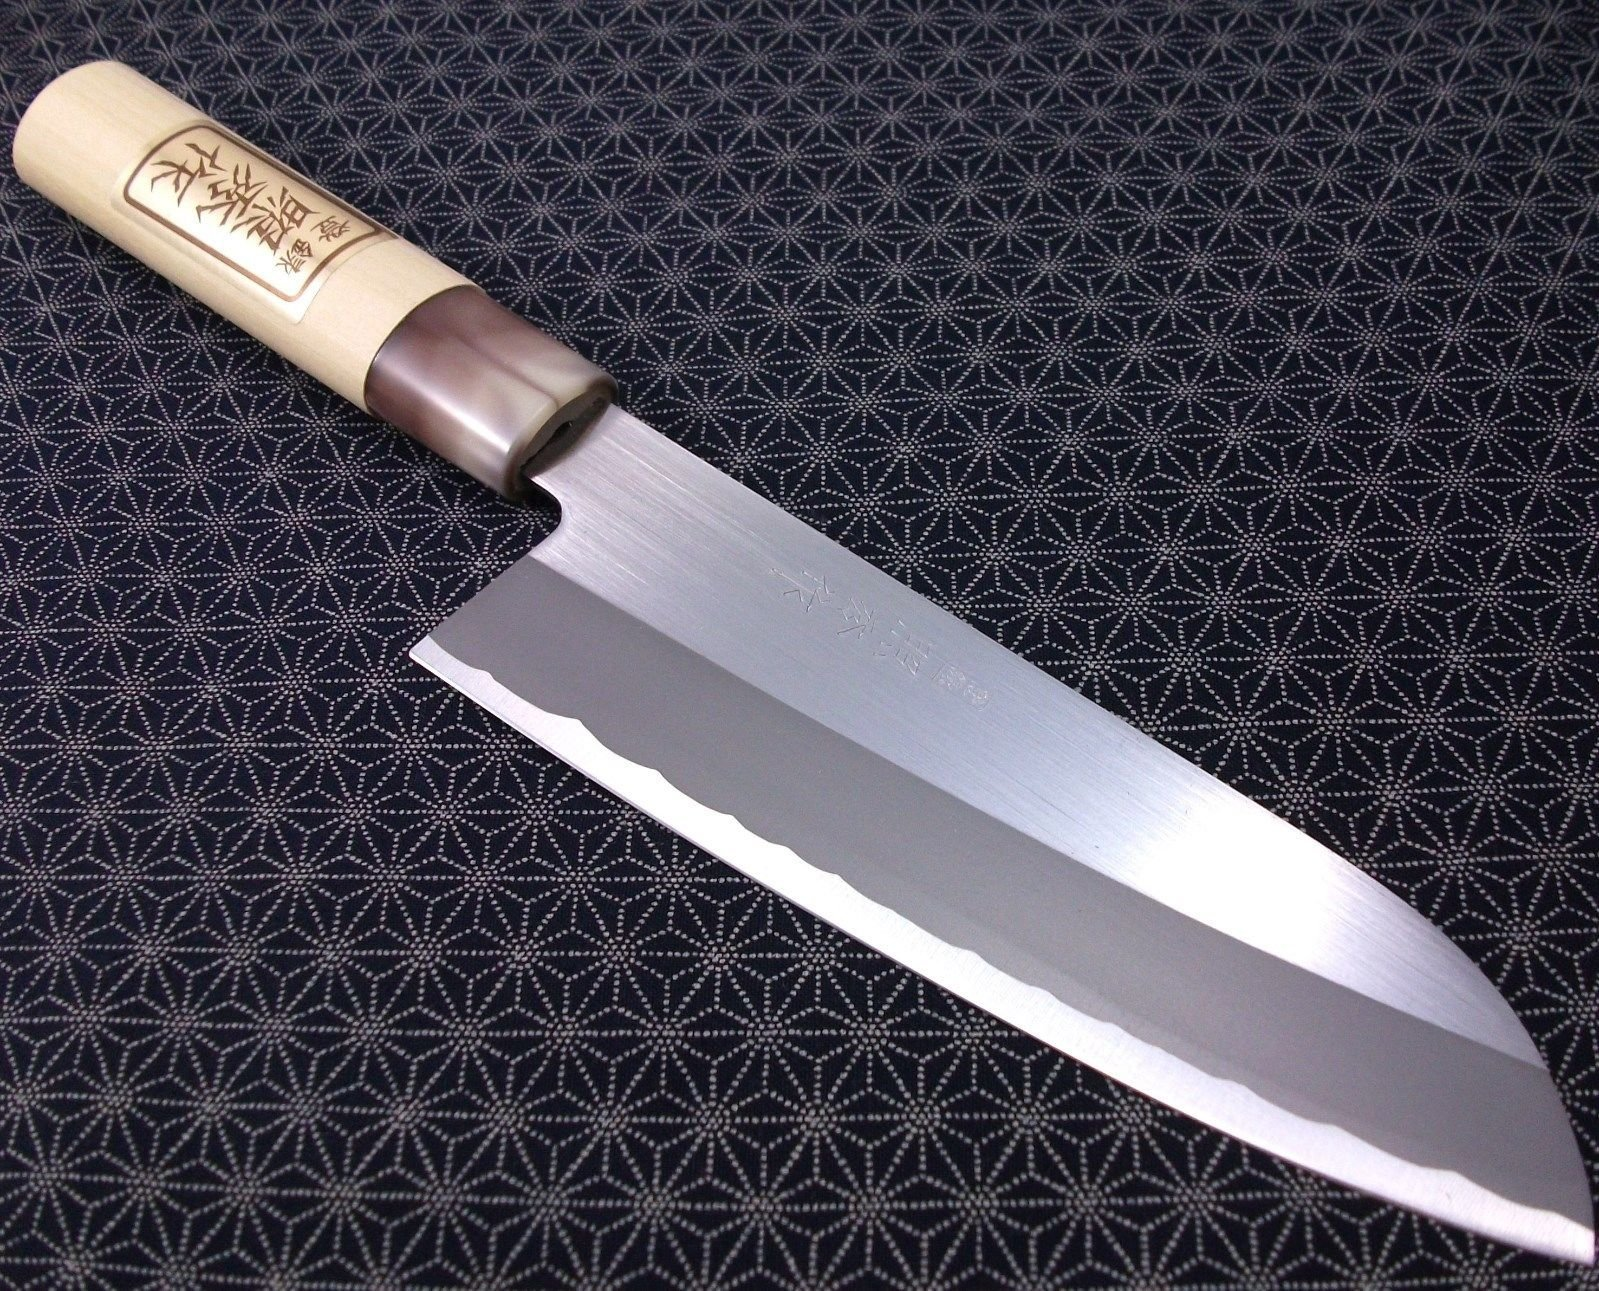 Japanese Santoku Kitchen Knife TERUHIDE Wooden Handle Carbon Steel Made in Japan by NEW (Image #1)